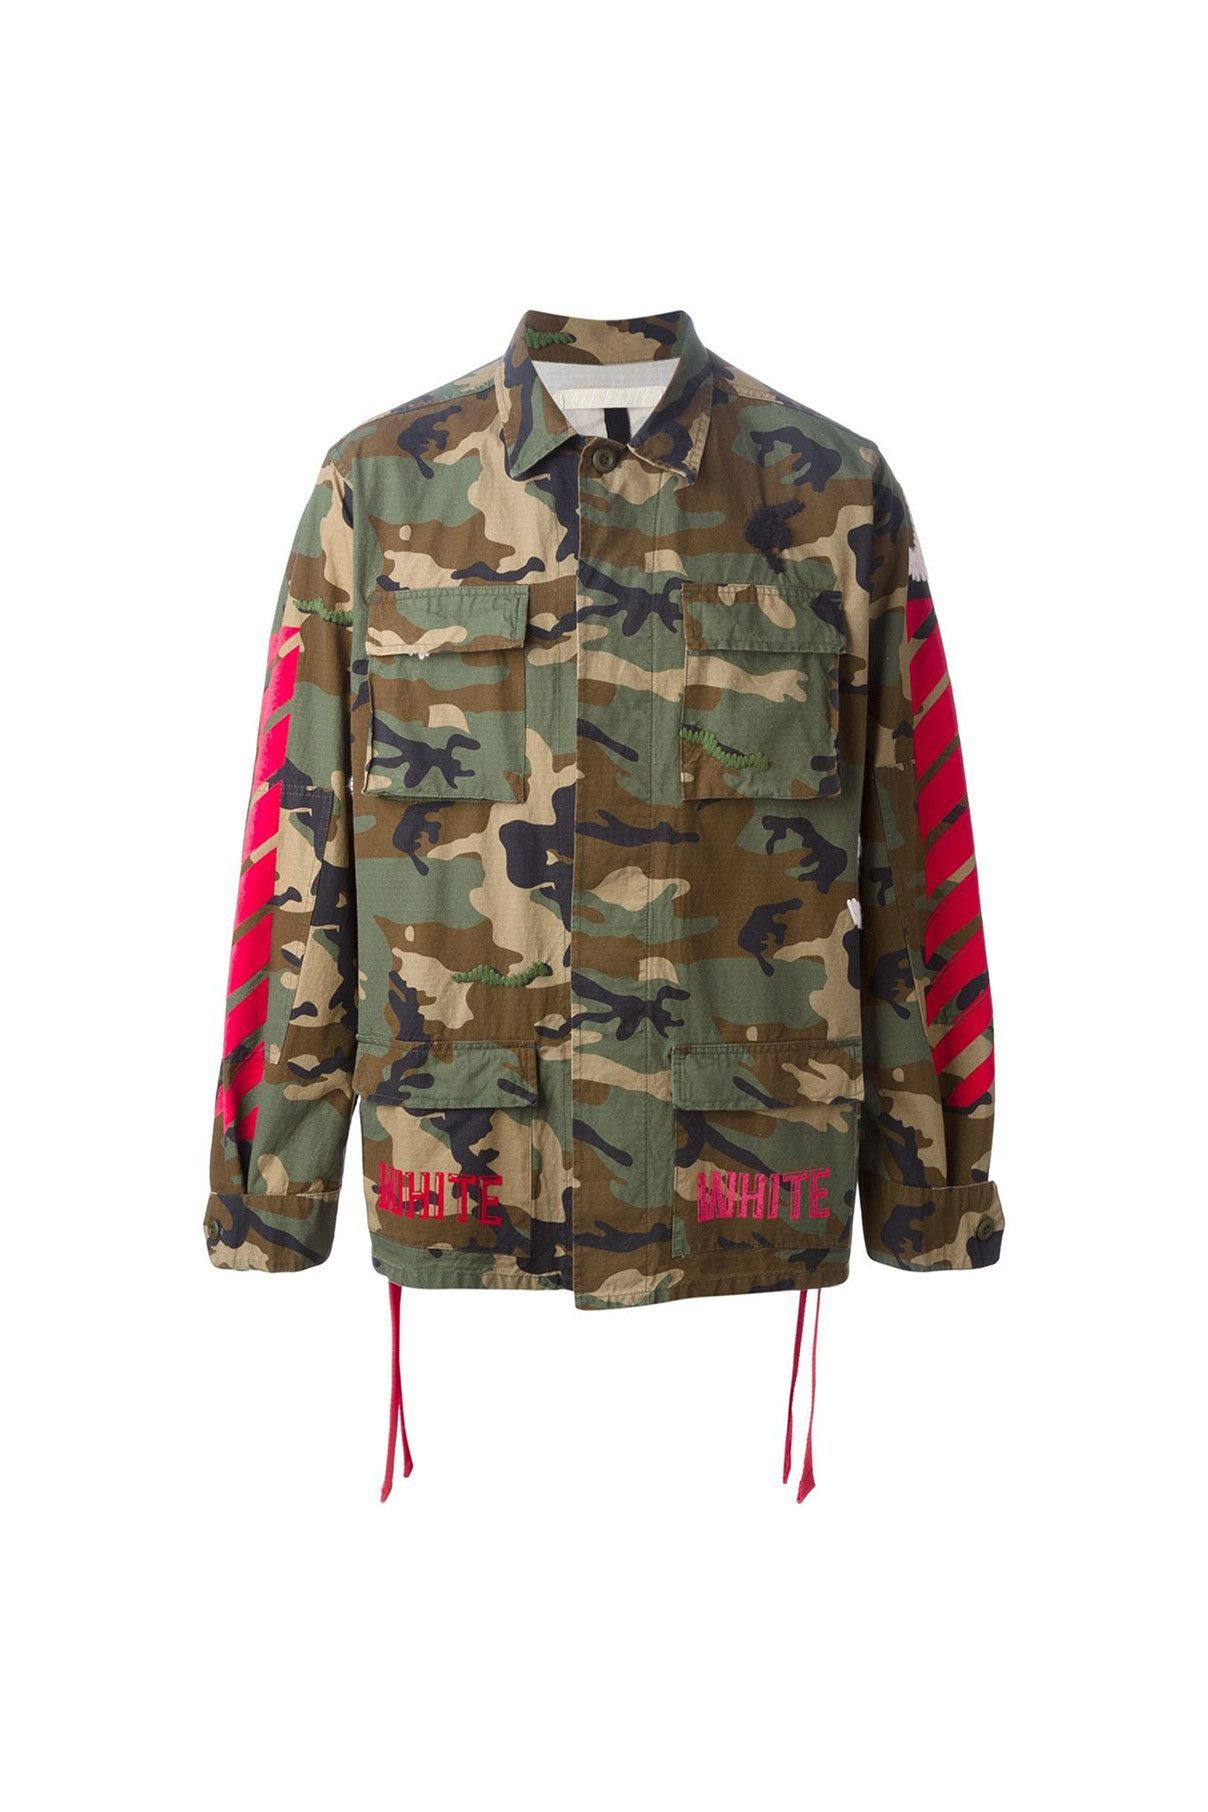 1f0430732a06  Off-White   01 clothing   07 outerwear   01 jacket  Camouflage Field Jacket